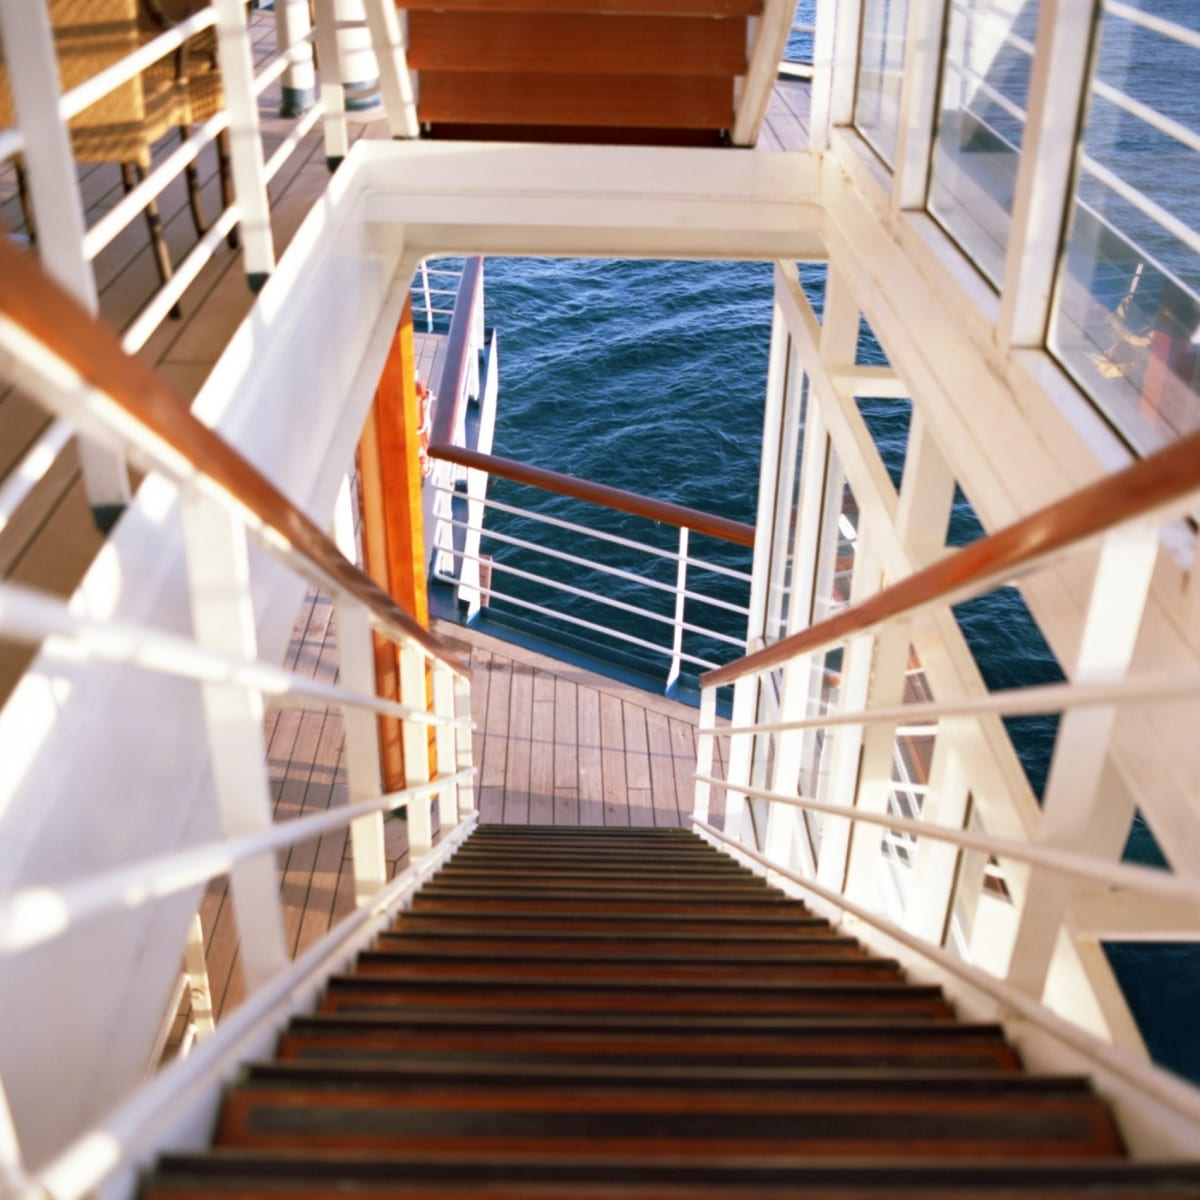 David Kitz, Ship Stairs, Photograph